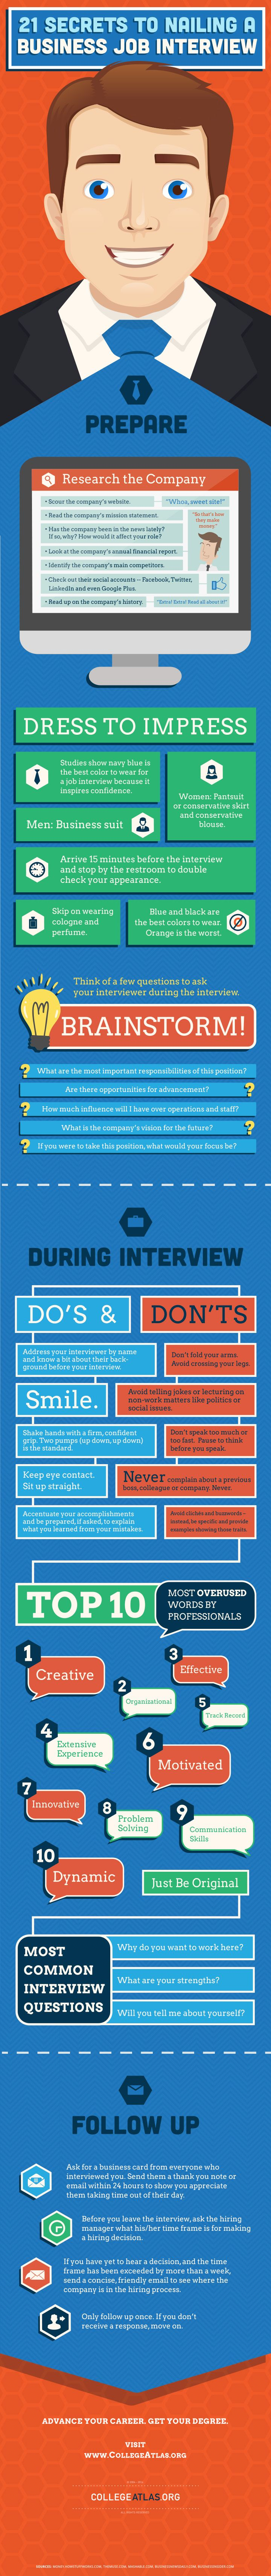 best images about job search resume interviewing tips on prep for your next interview these 21 secrets to nailing a business job interview